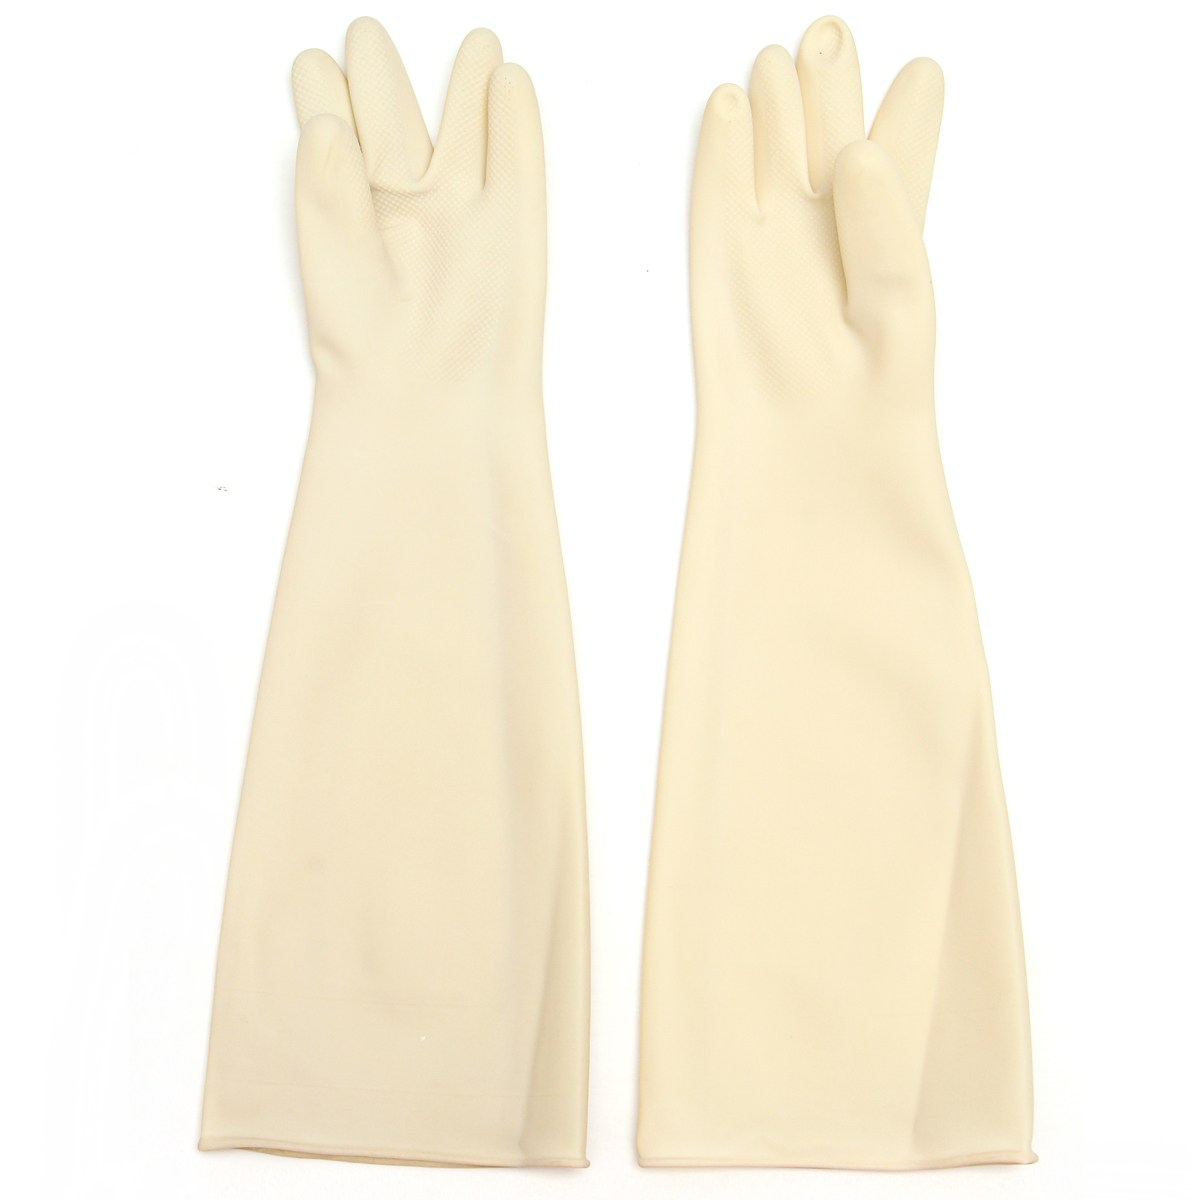 NEW Safurance A Pair Of Replacement Chemical Resistant Gloves 60cm/24Inch natural  rubber Safety Glove  Latex Cleaning Glove anti acid and alkali chemical corrosion fisheries agriculture latex rubber gloves labor supplies black